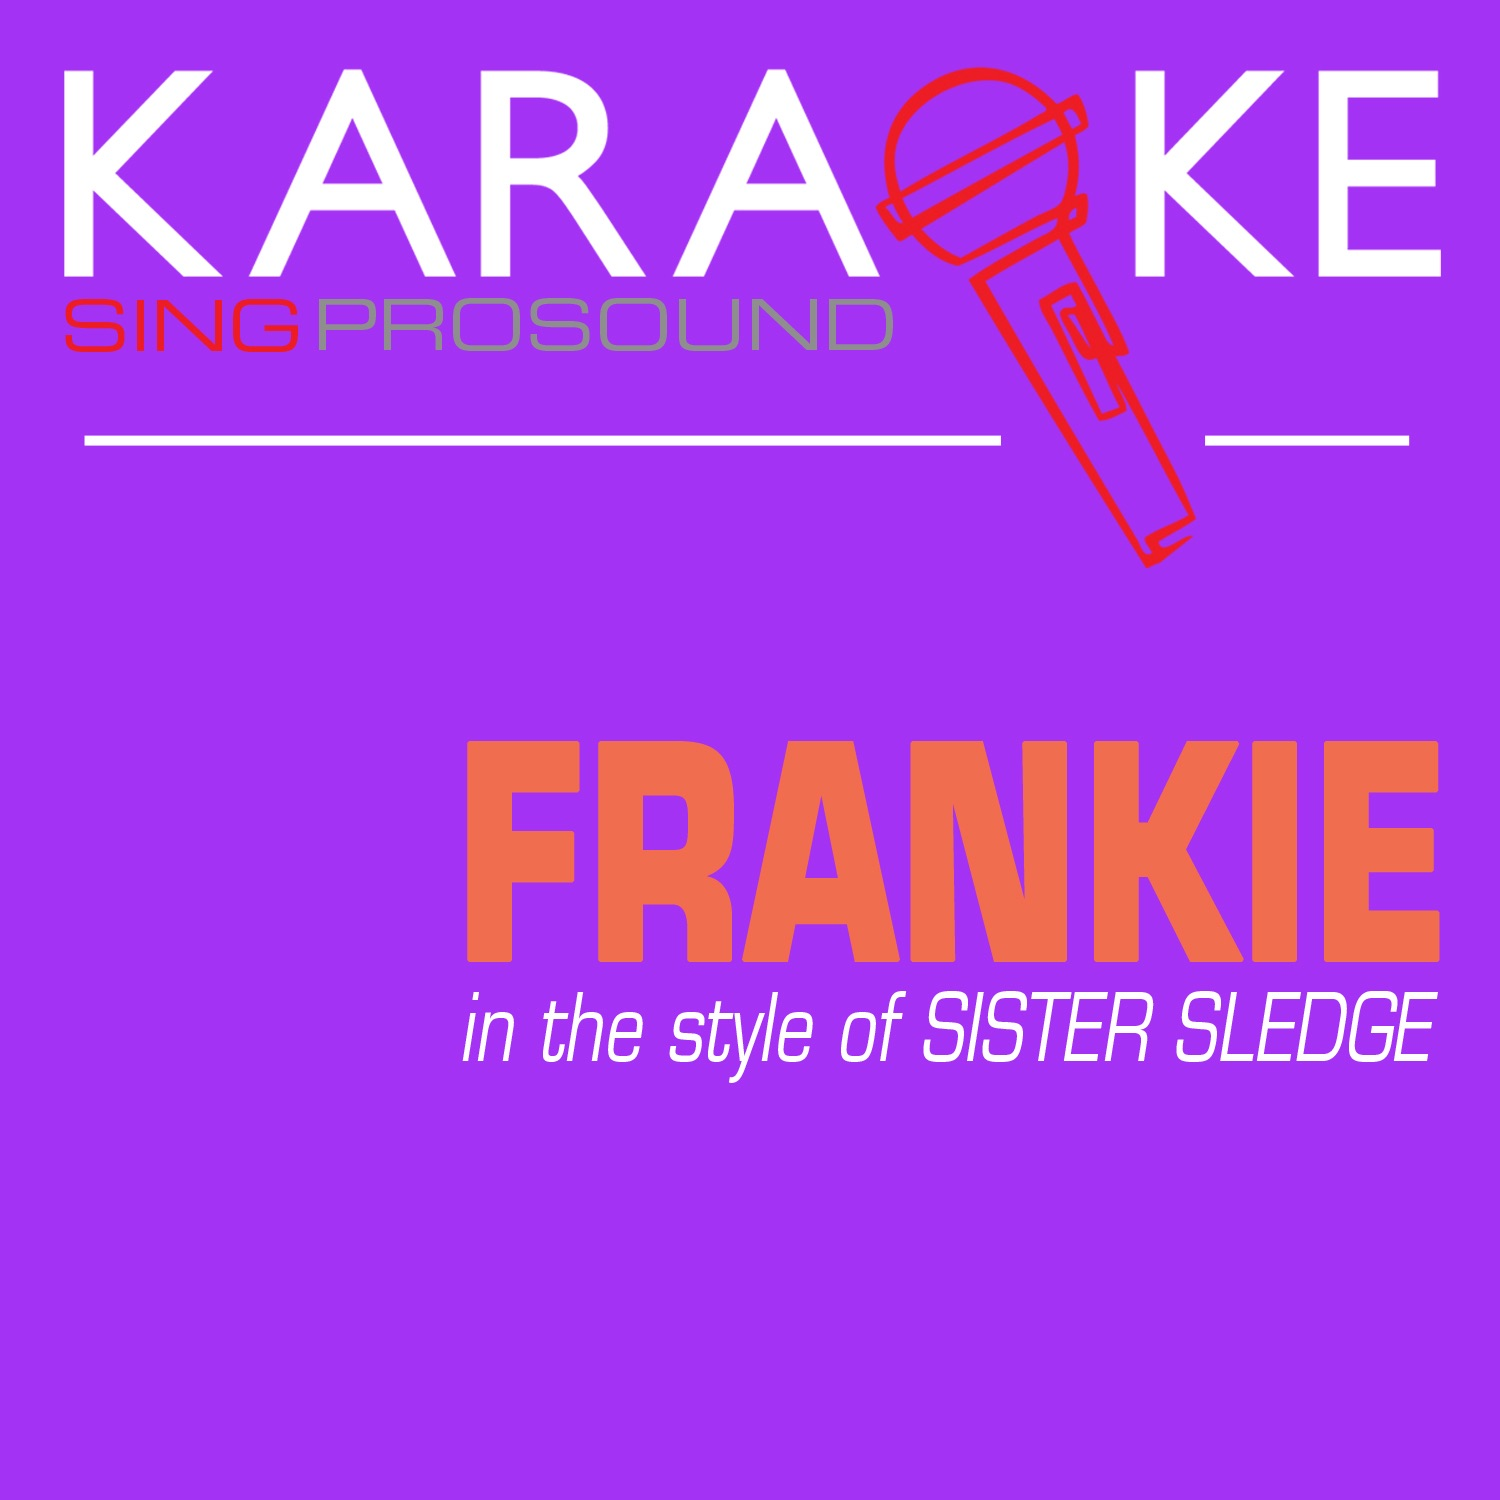 Frankie (In the Style of Sister Sledge) [Karaoke with Background Vocal] - Single